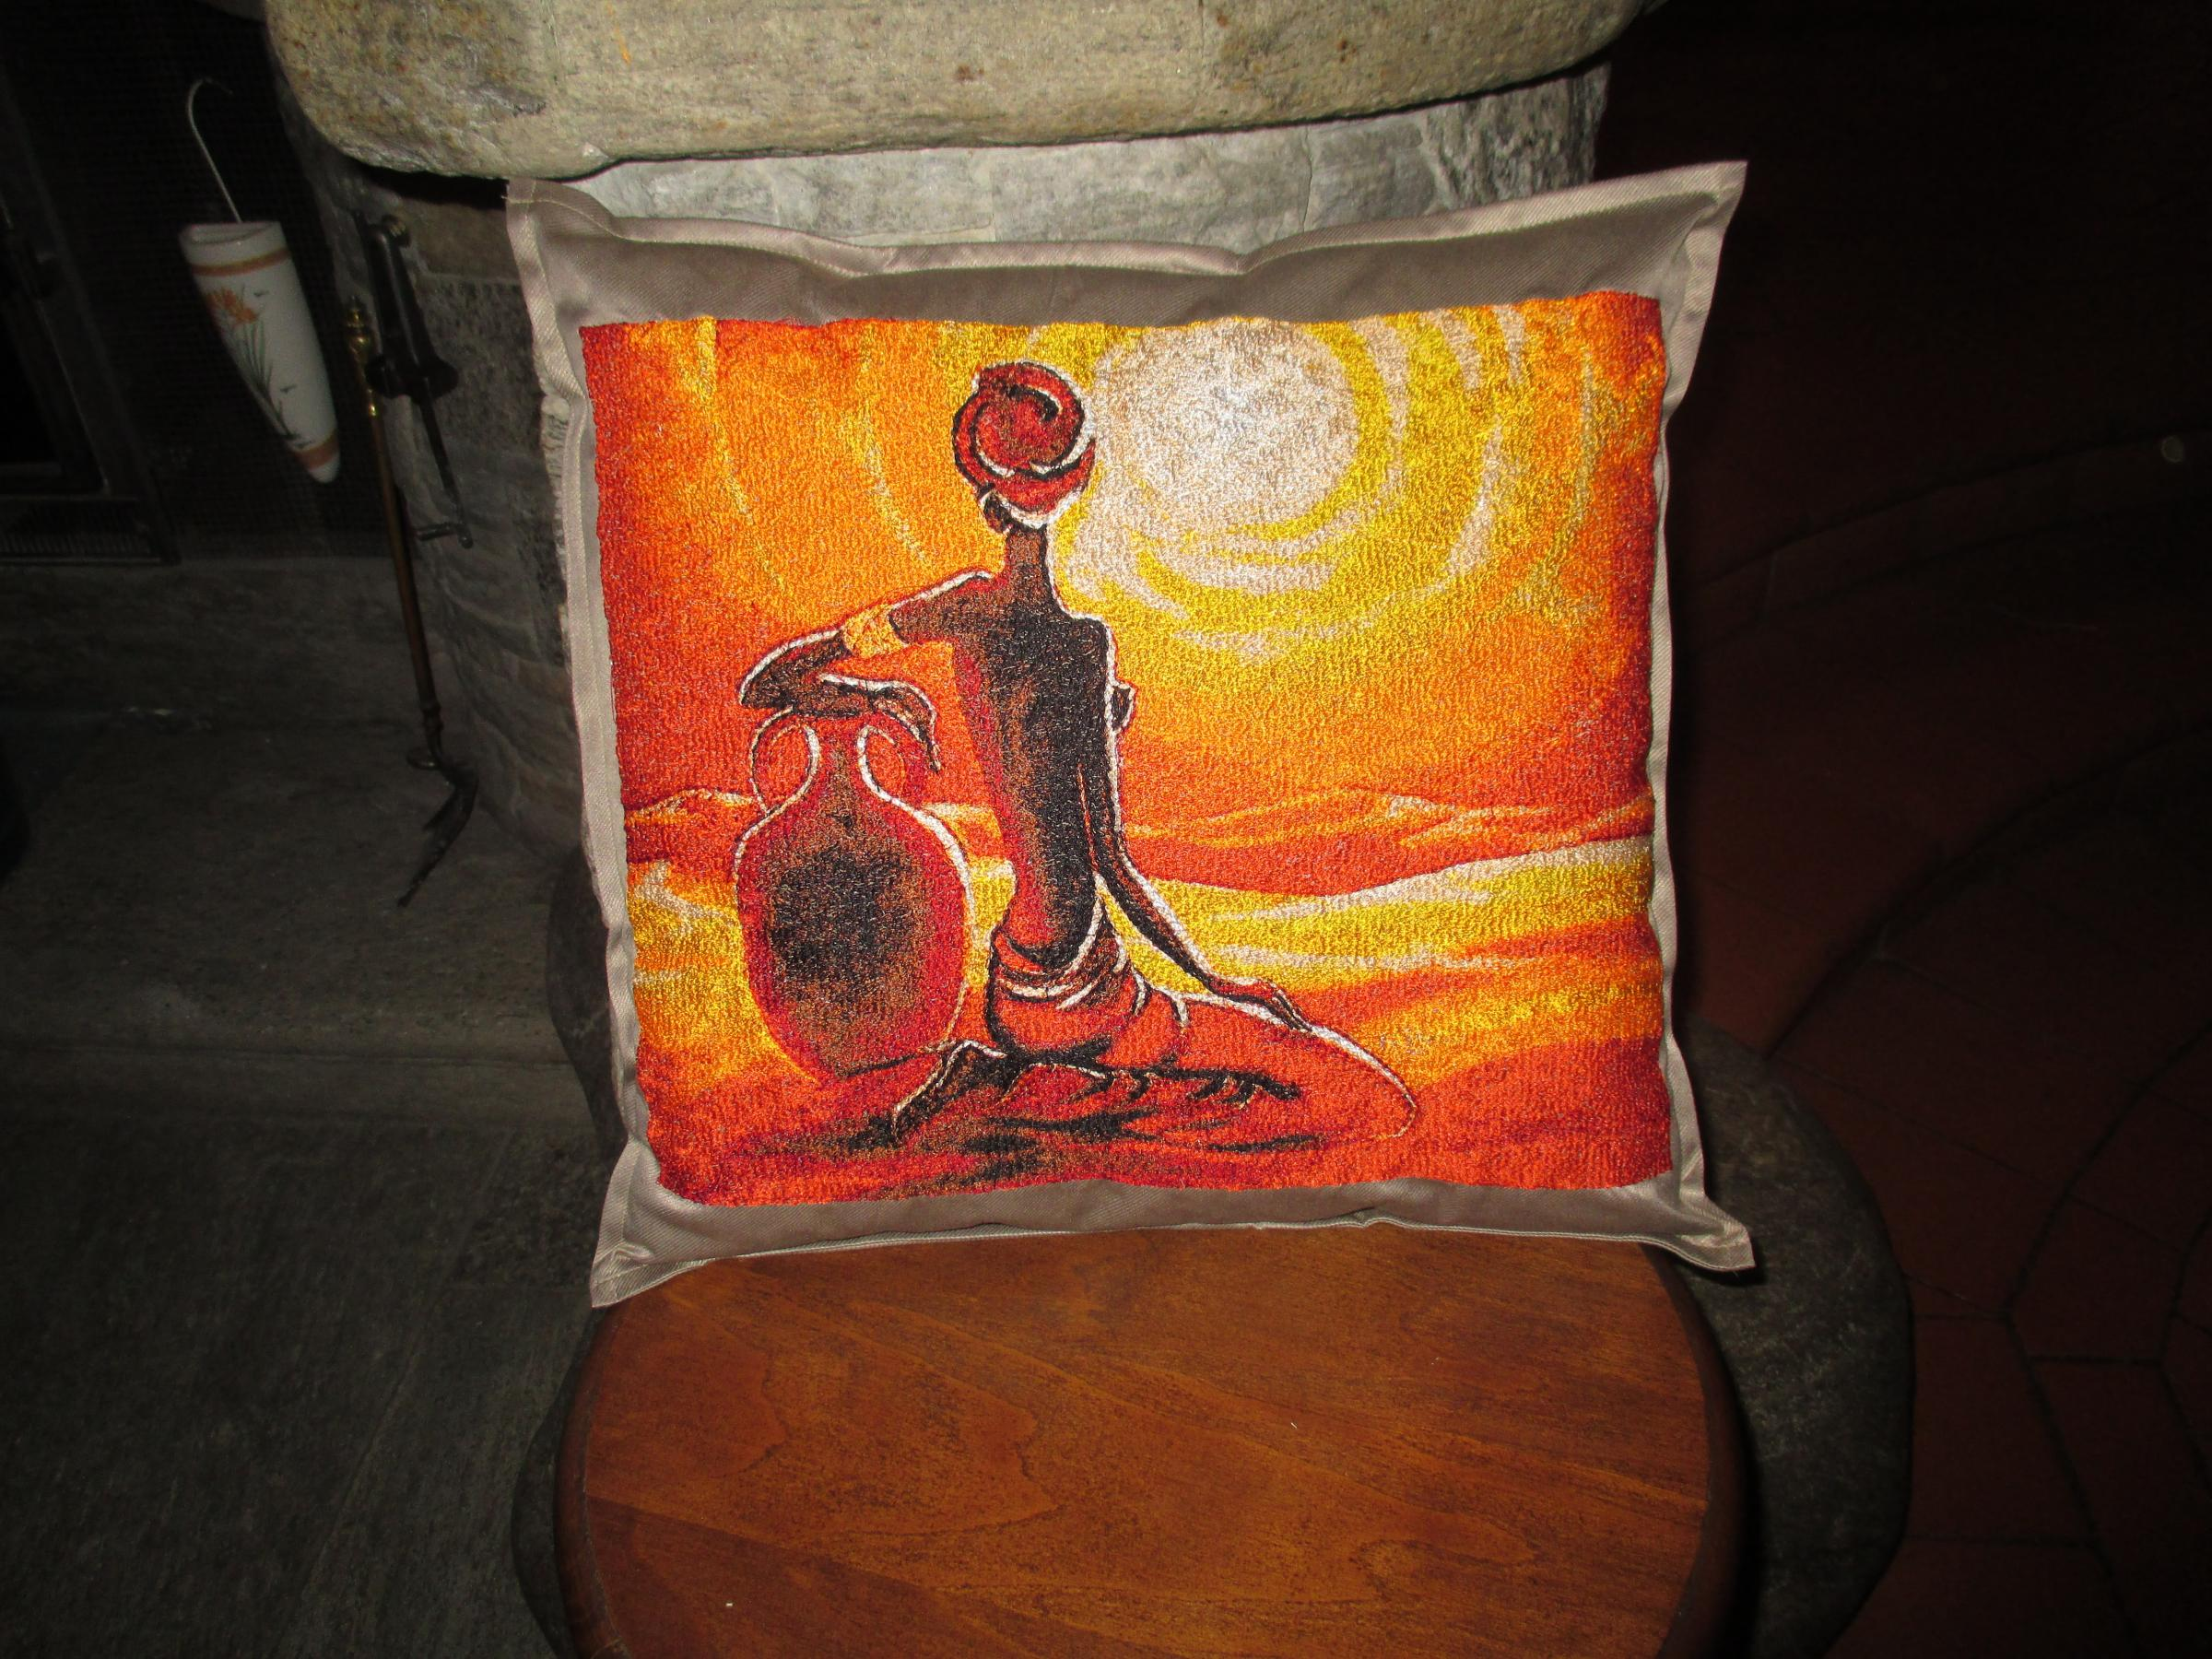 Embroidered pillow with Africa sunset design